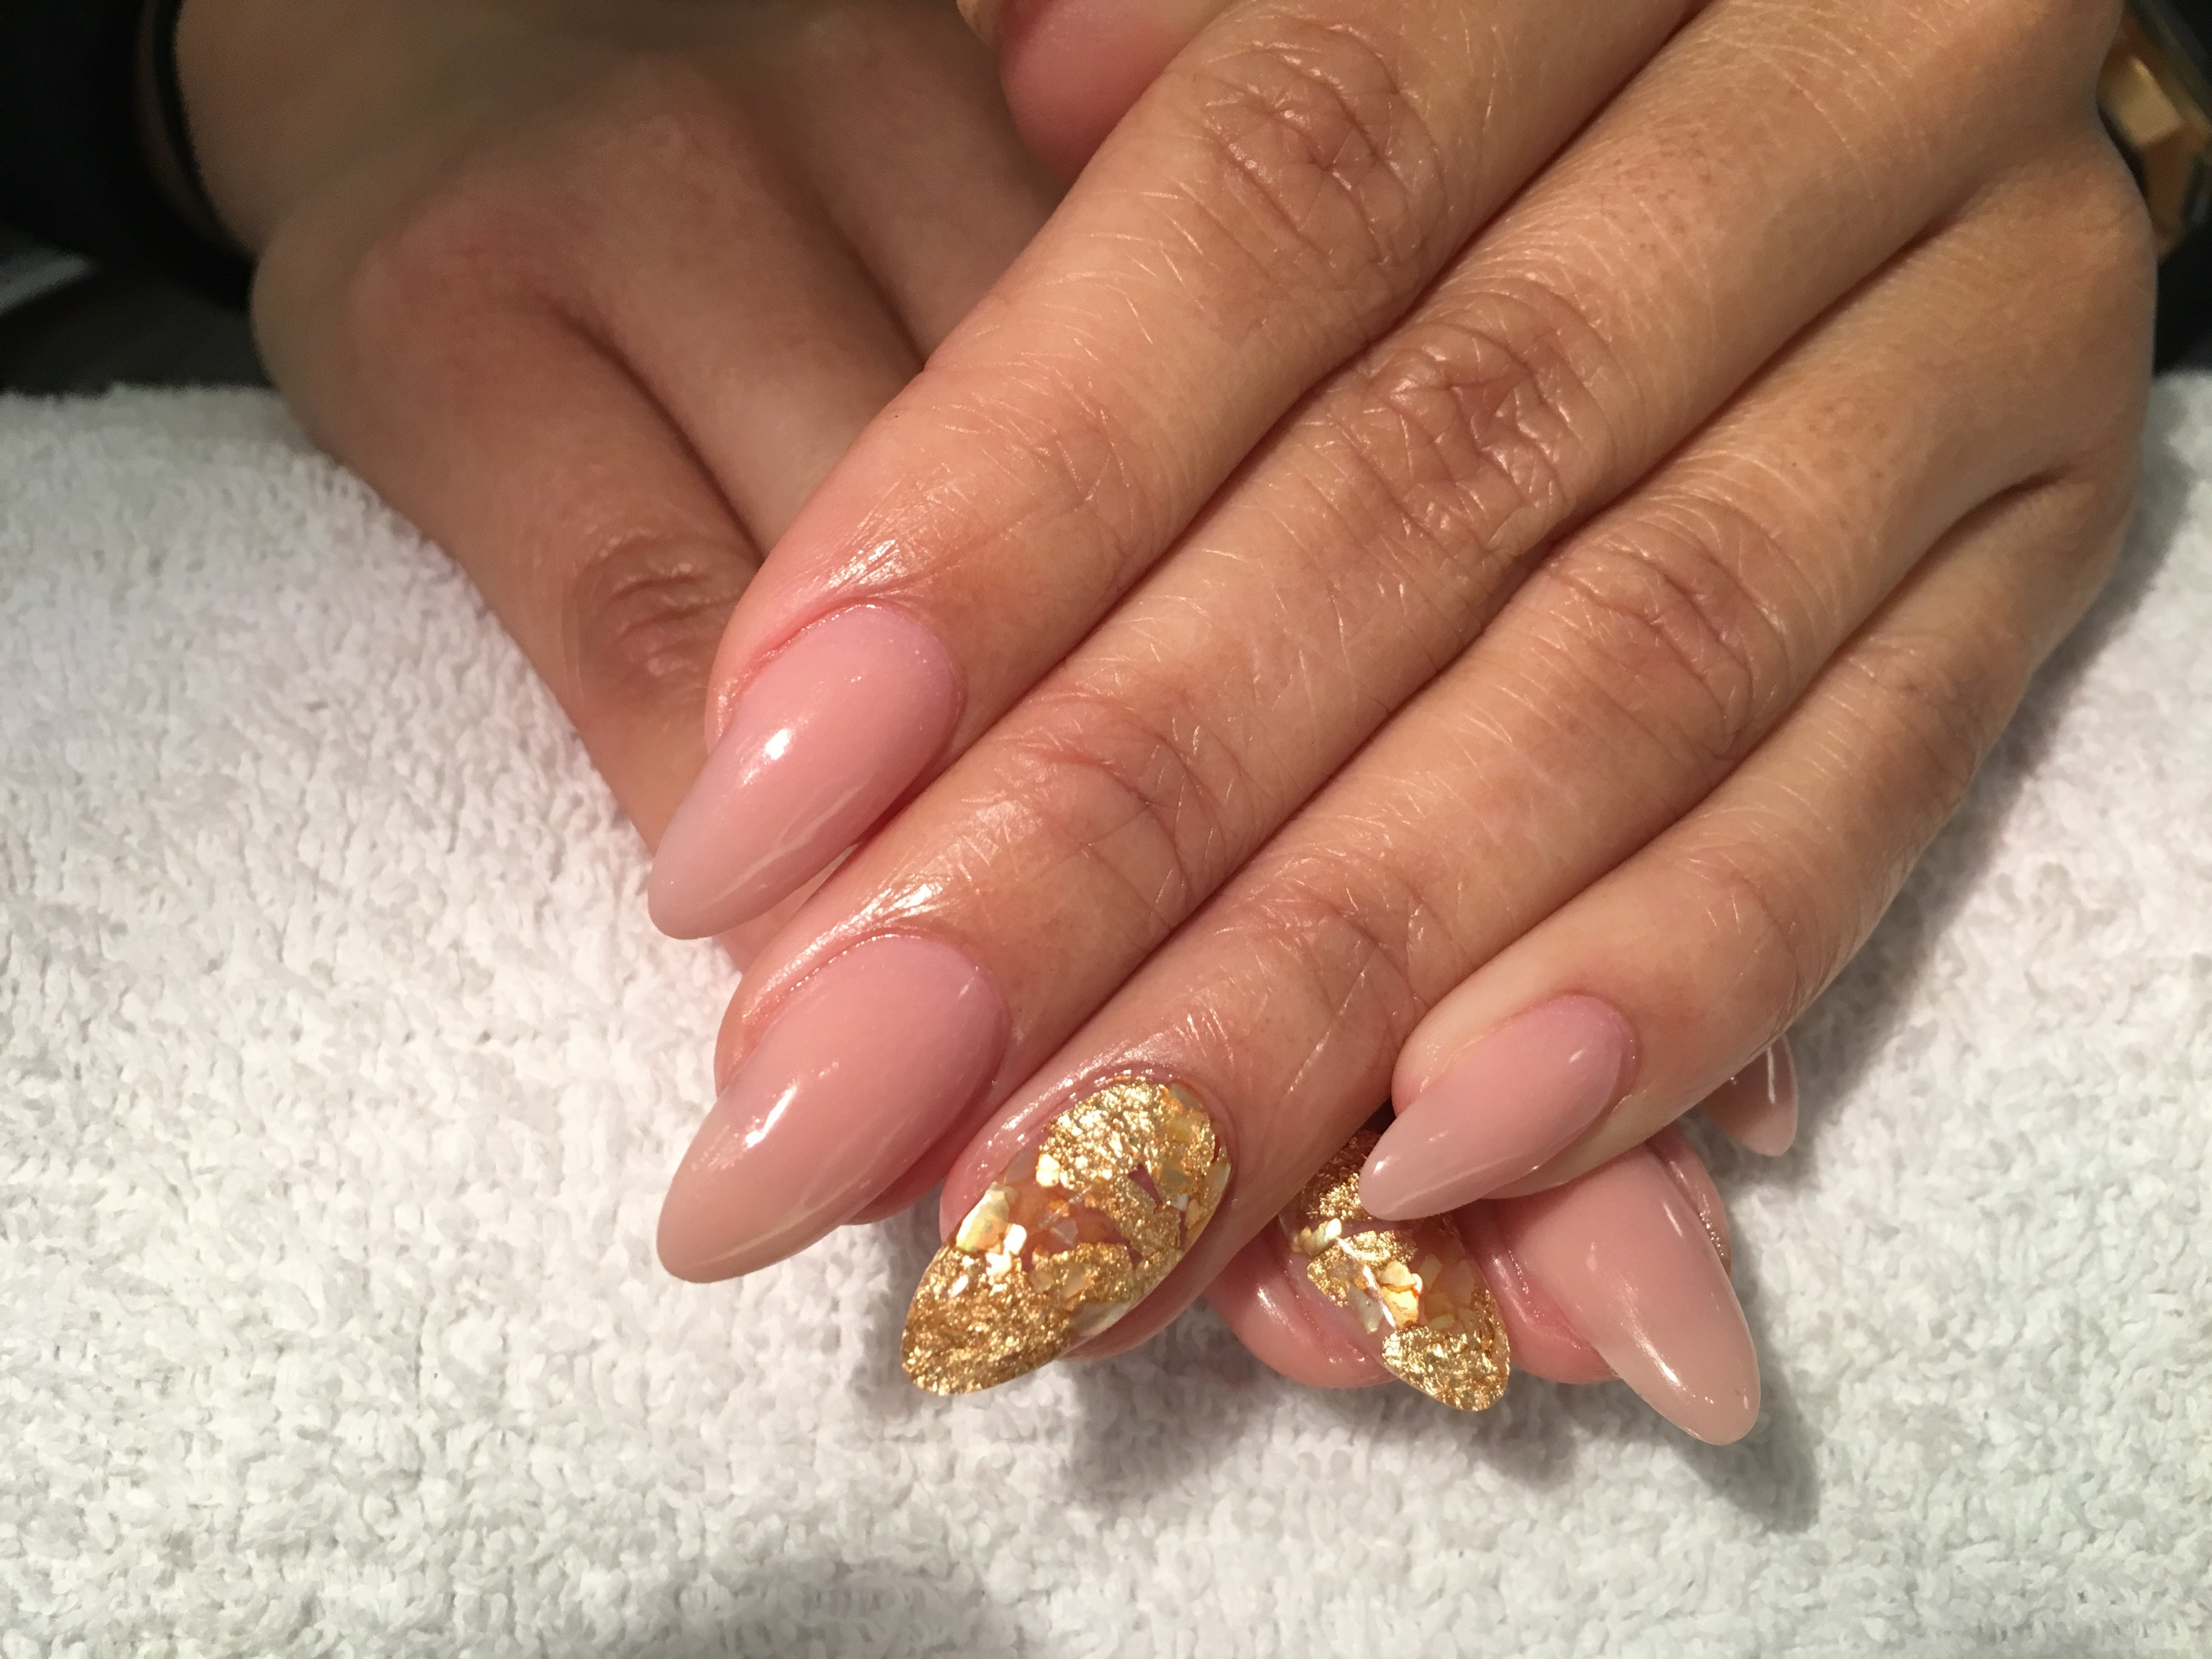 Acryl Nagels Archieven Pagina 2 Van 4 Care 4 Your